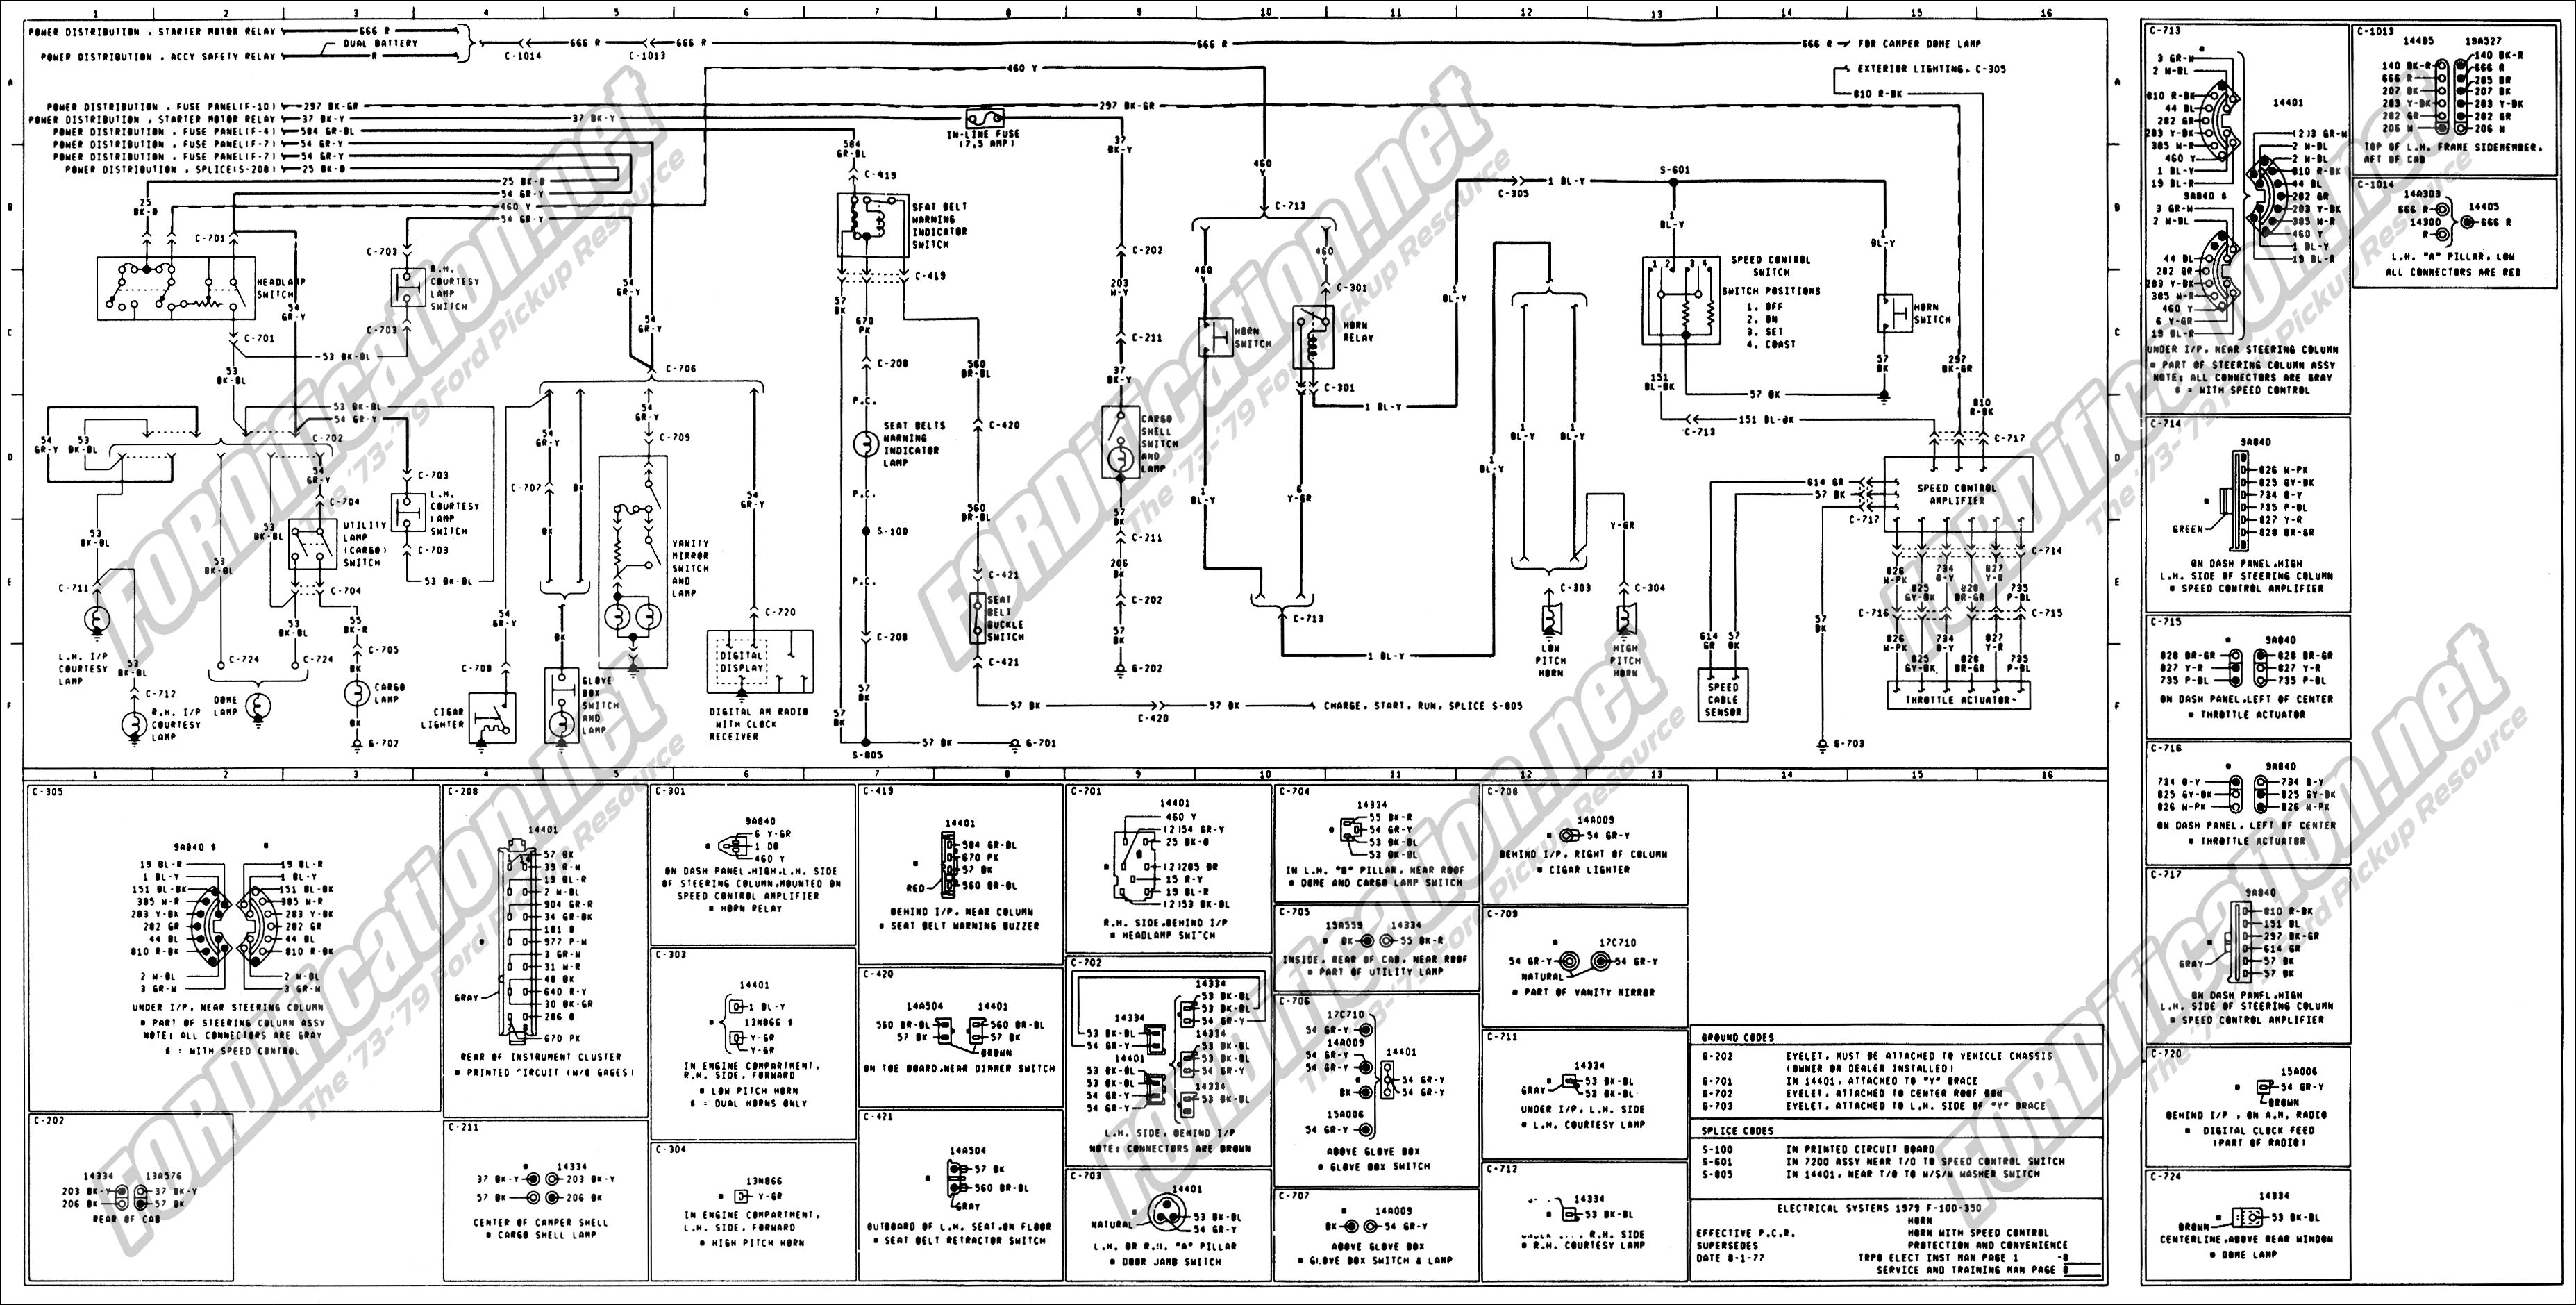 F350 Wiring Diagram F350 Free Wiring Diagrams